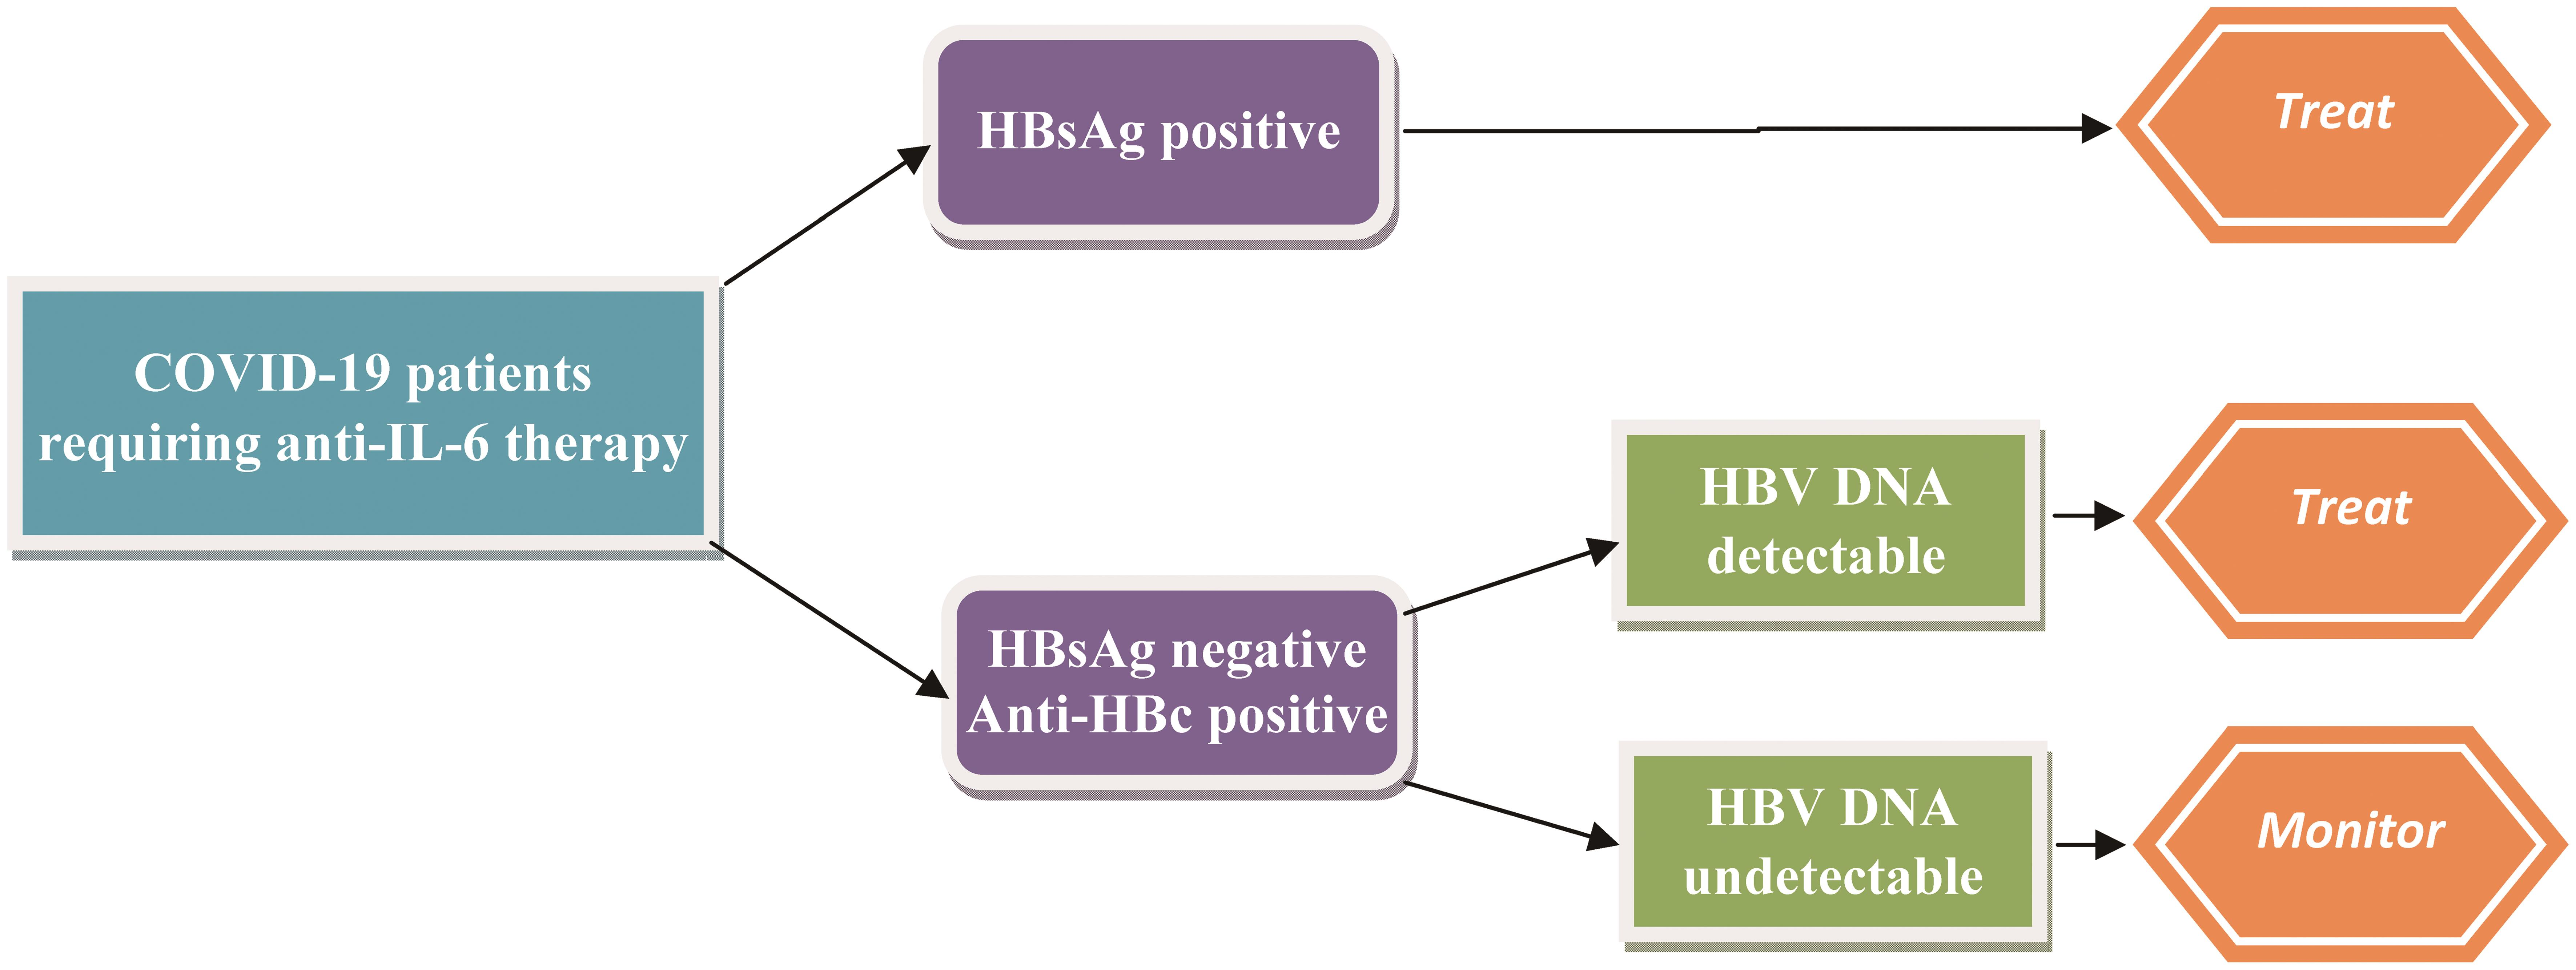 Antiviral treatment strategy in patients with COVID-19 at risk for HBV reactivation receiving anti-IL-6 therapy.